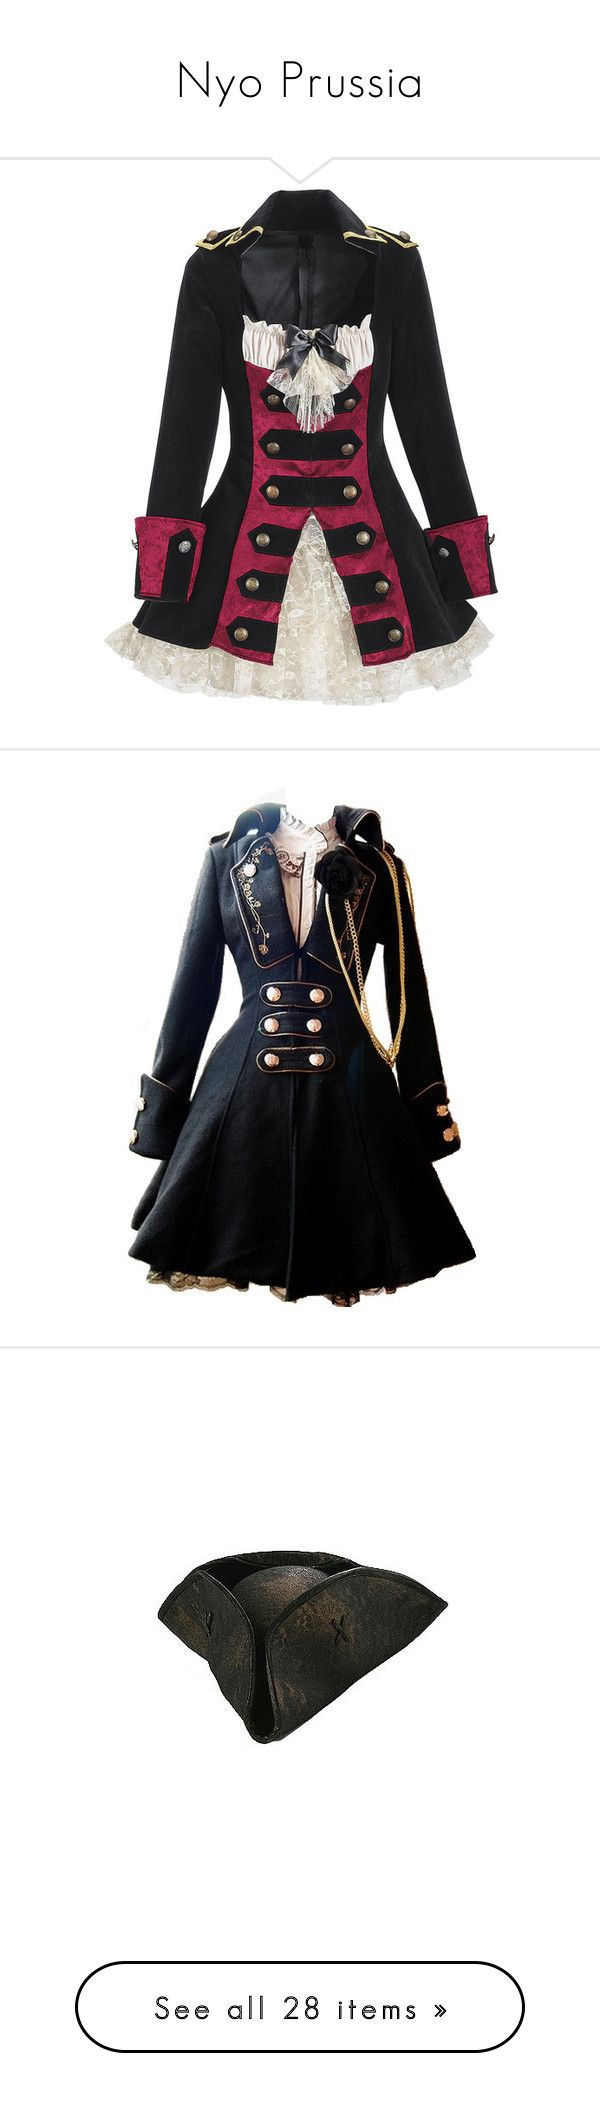 """""""Nyo Prussia"""" by fullmetalbutler ❤ liked on Polyvore featuring costumes, dresses, jackets, pirate, pirate captain costume, pirate costume, captain halloween costumes, captain costume, pirate halloween costumes and coats"""